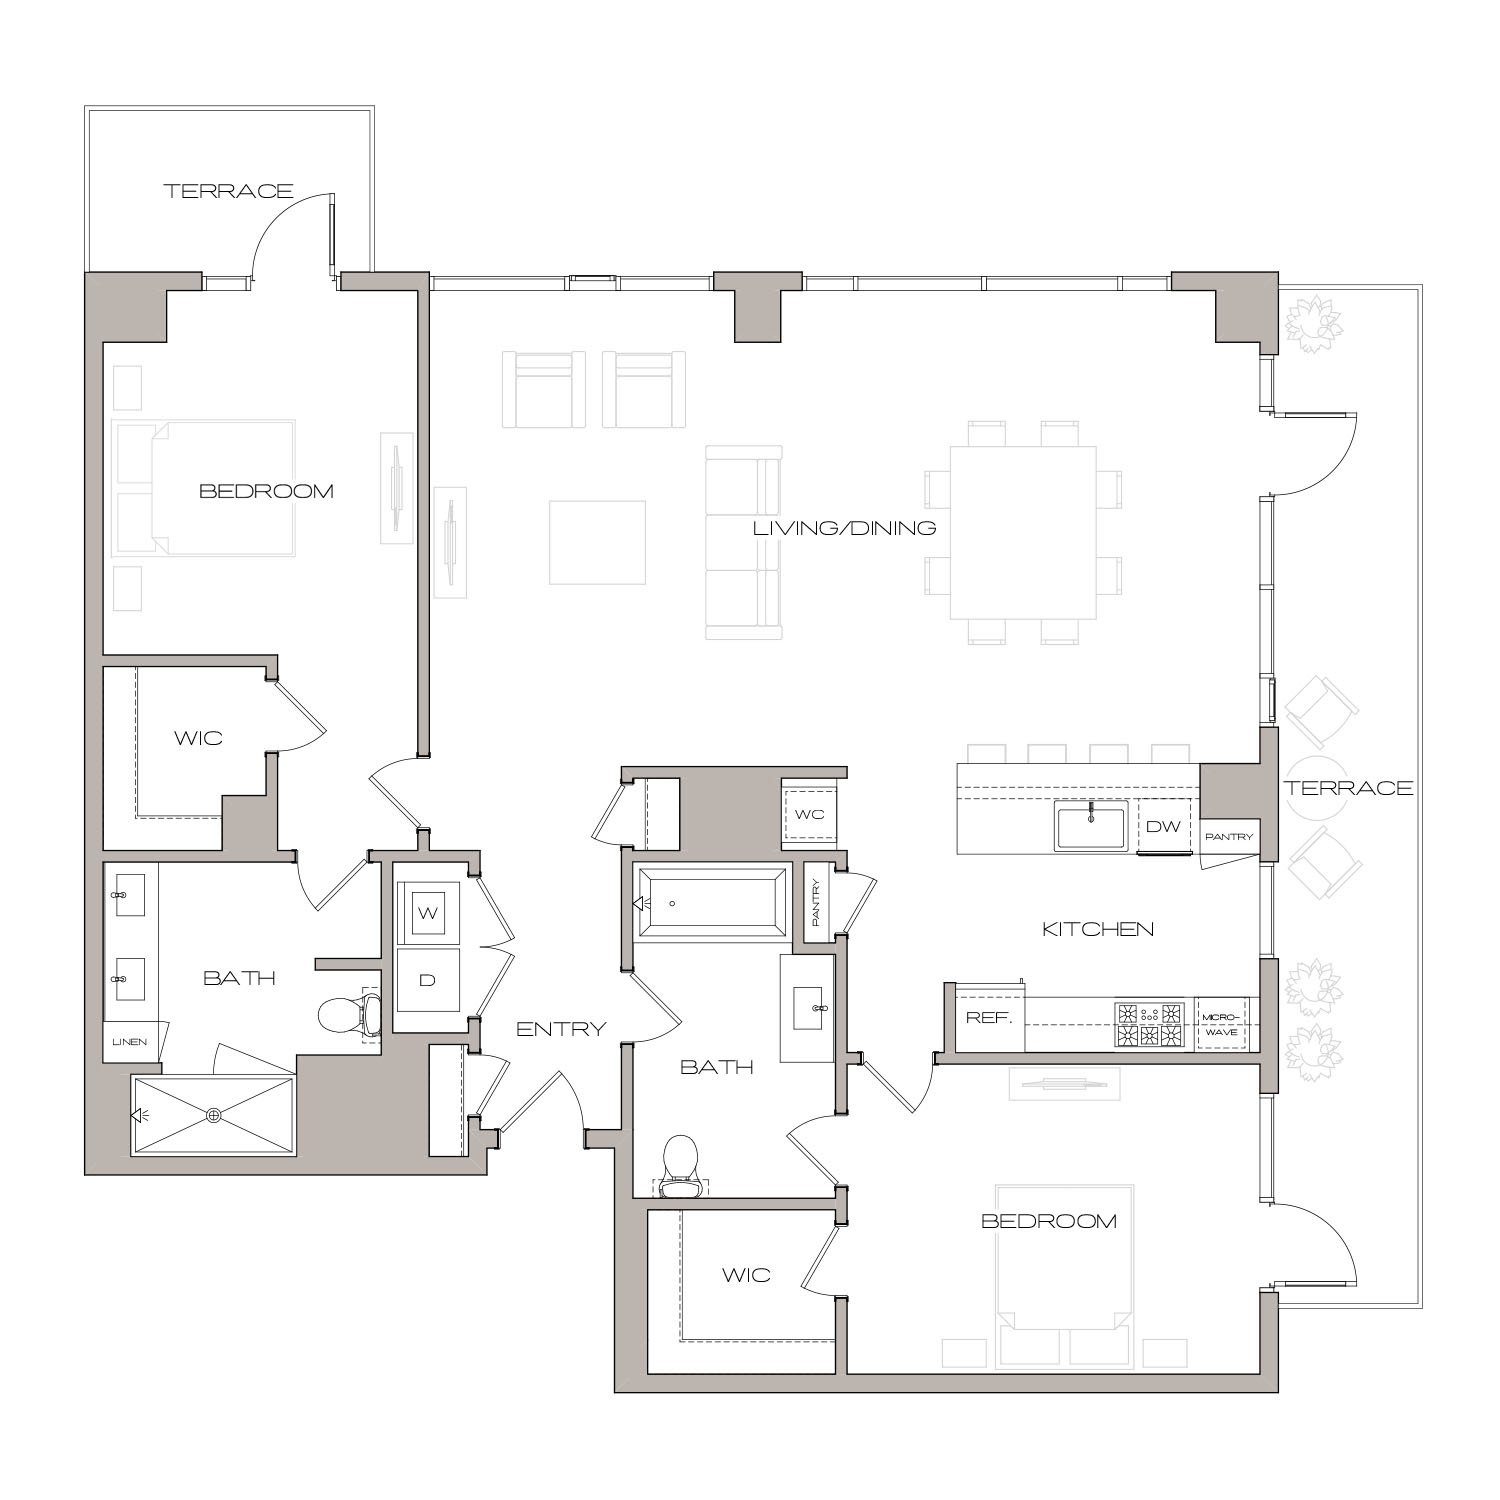 P H 7 floor plan diagram. Penthouse apartment with two bedrooms, two bathrooms, an open kitchen living and dining area, a terrace, and a washer dryer.